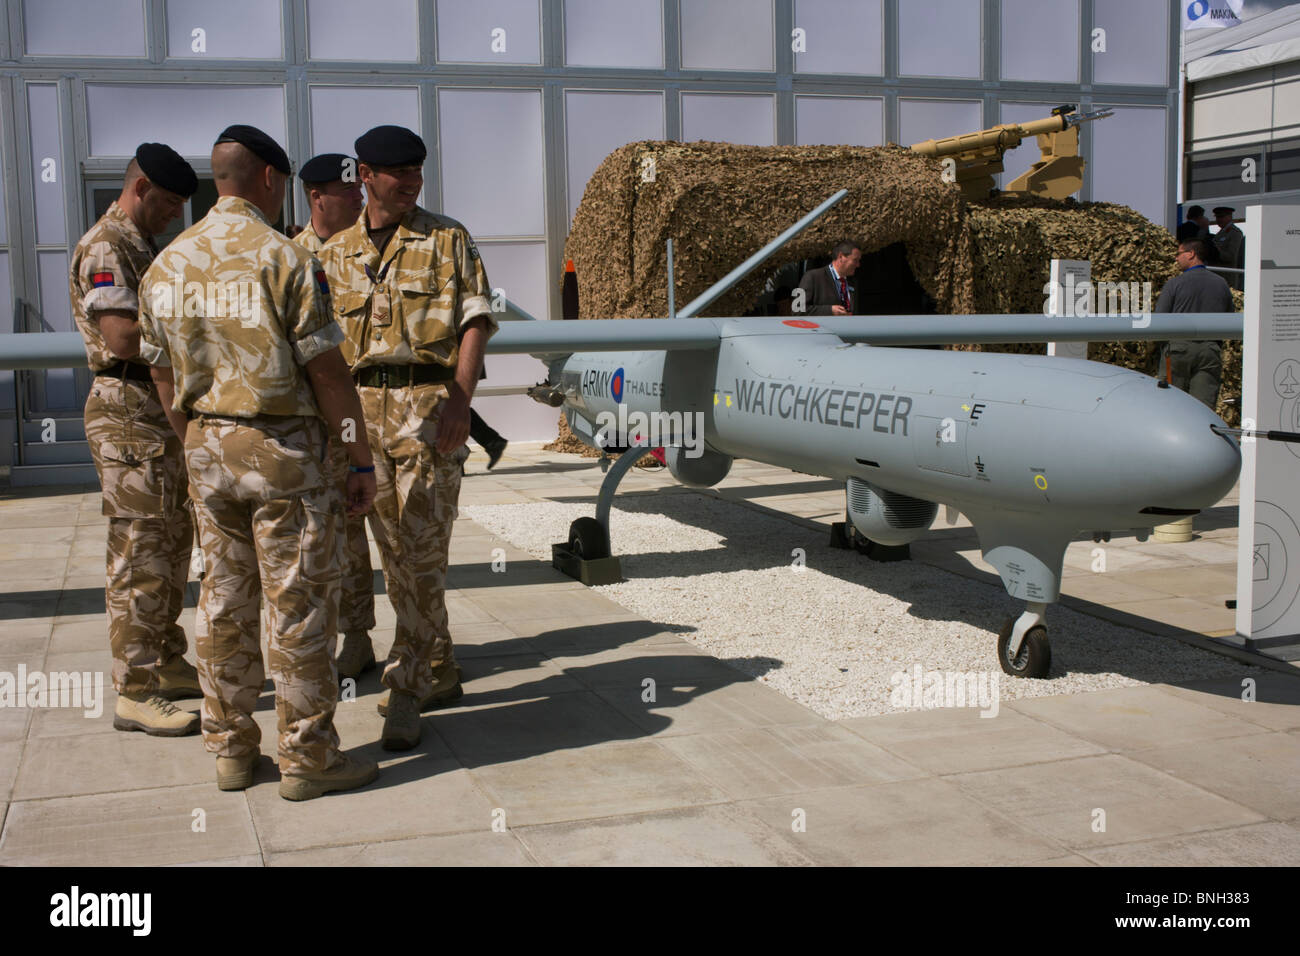 British Army soldiers gather outside the hospitality chalet of aerospace manufacturer Thales. - Stock Image